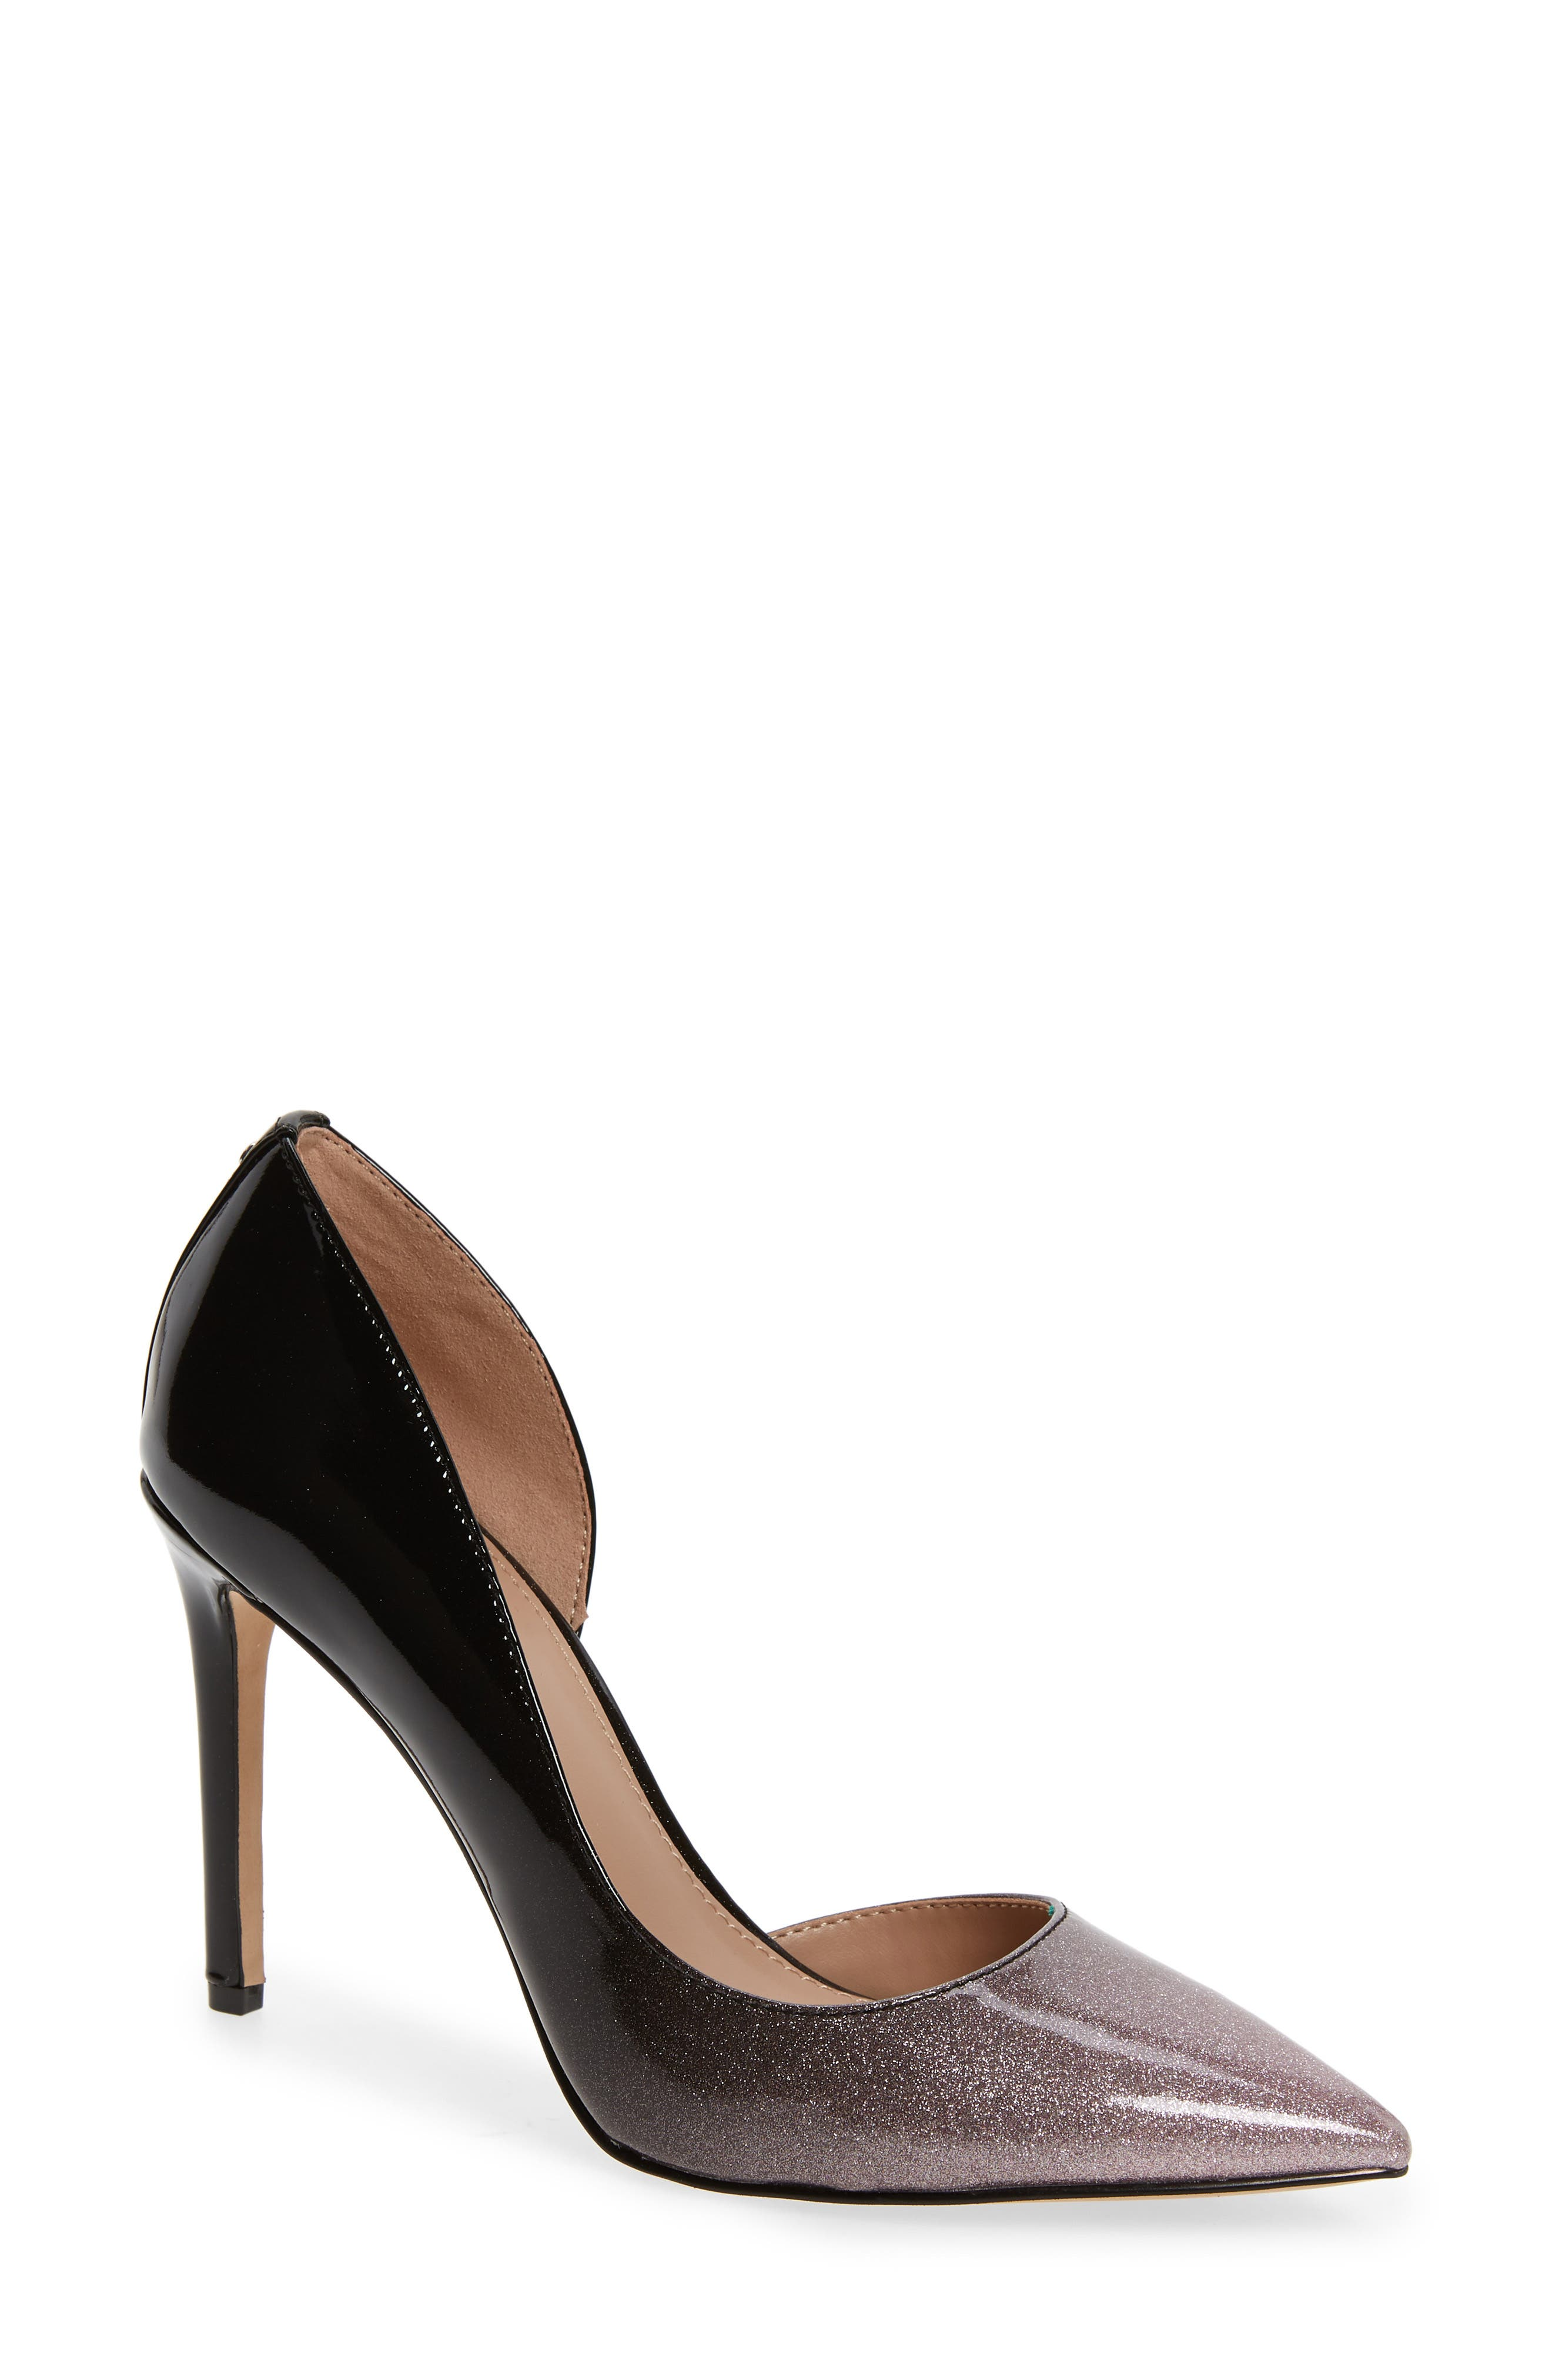 BCBG Lenny Half D'Orsay Pump in Ombre Pink Patent Leather